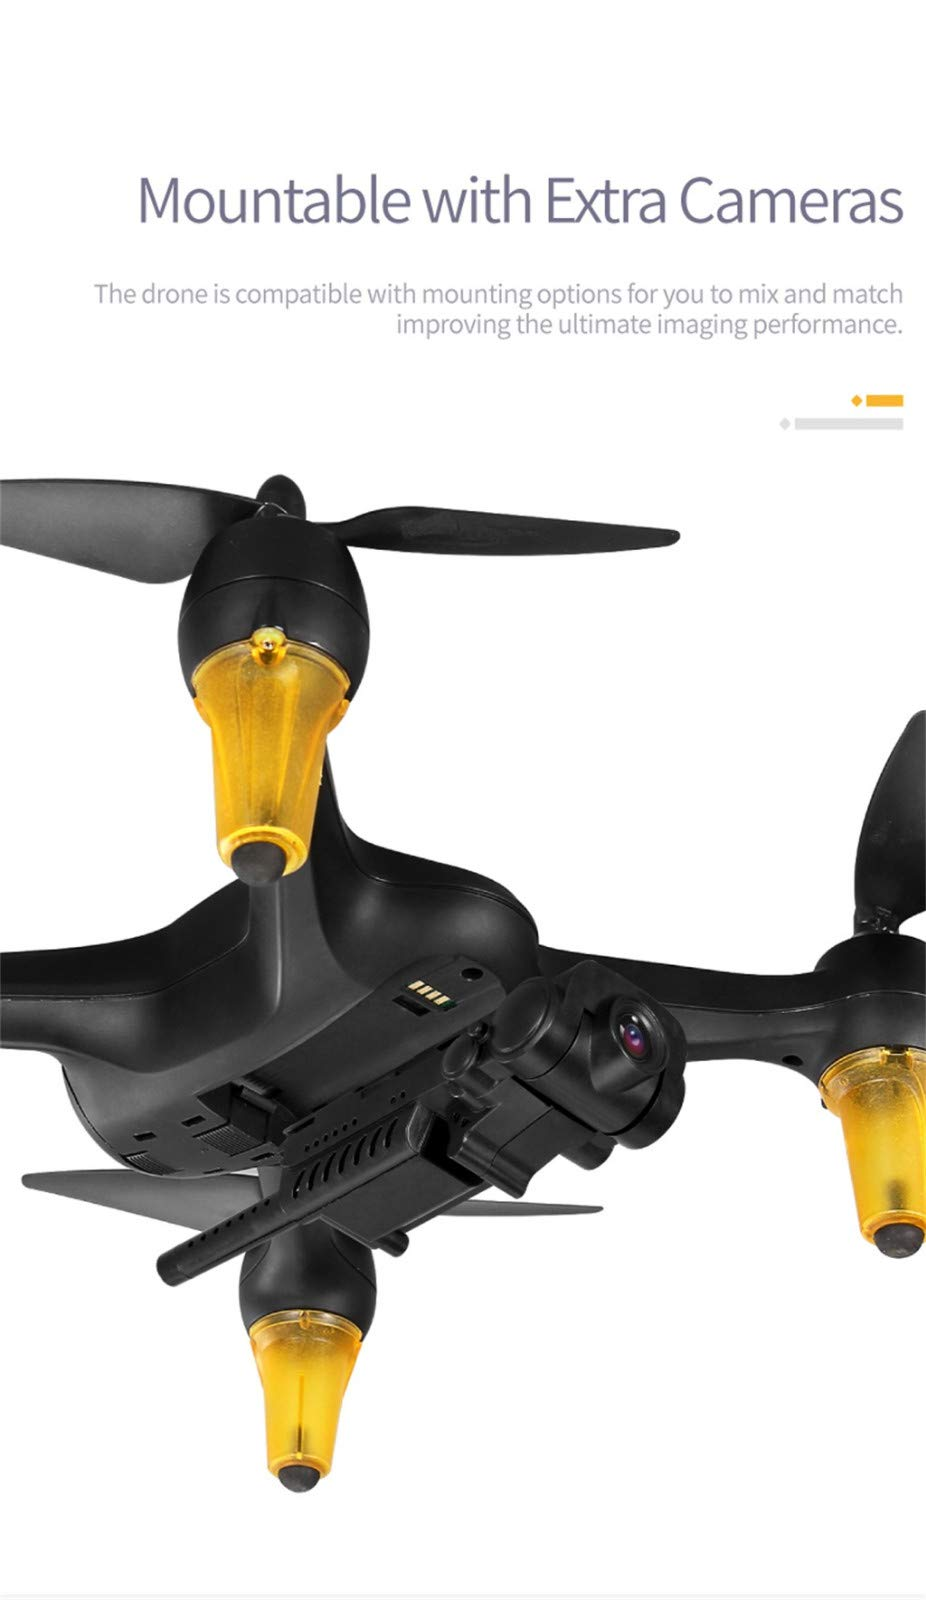 MOZATE JJR/C X3P GPS 5.8G WiFi FPV Wide-Angle 1080P Brushless RC Quadcopters Drone RTF (Black) by MOZATE (Image #8)